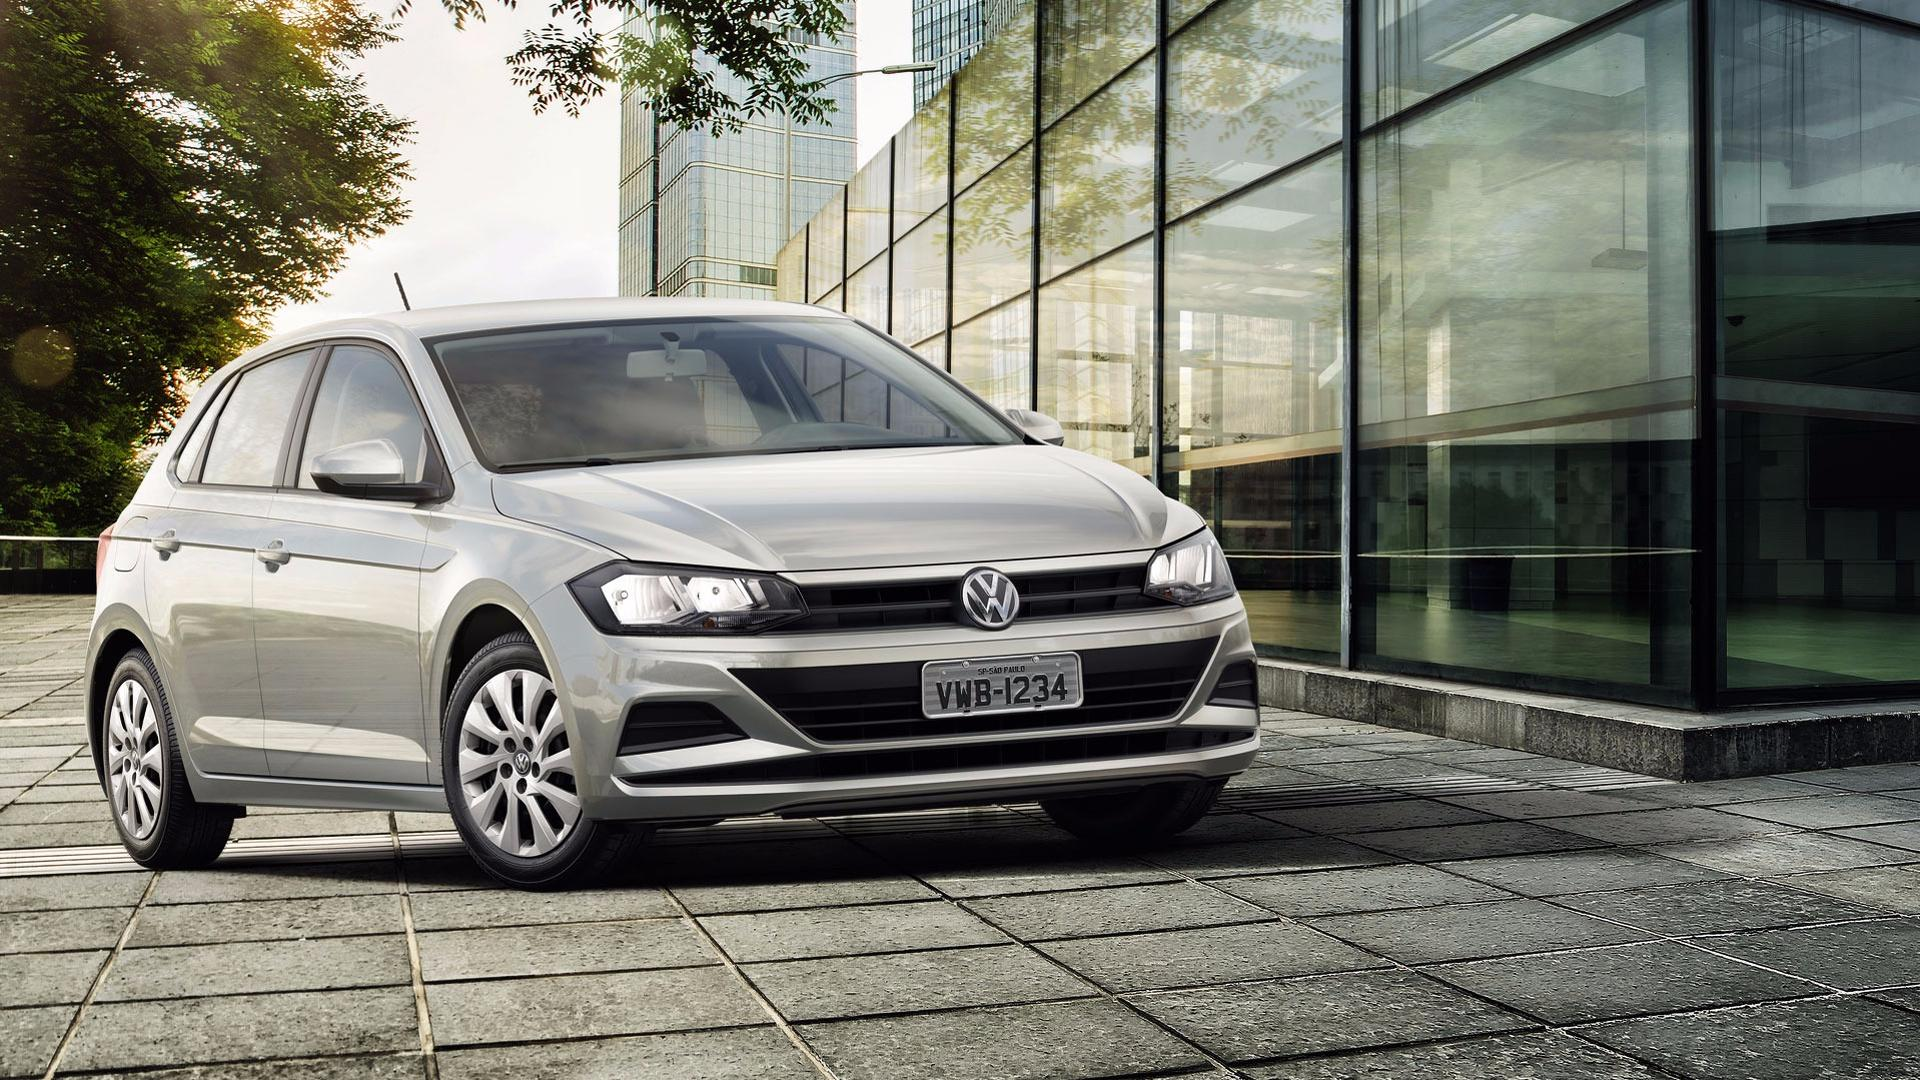 2018 Volkswagen Polo Launched in Brazil With 128 HP 1.0-Liter Turbo - autoevolution